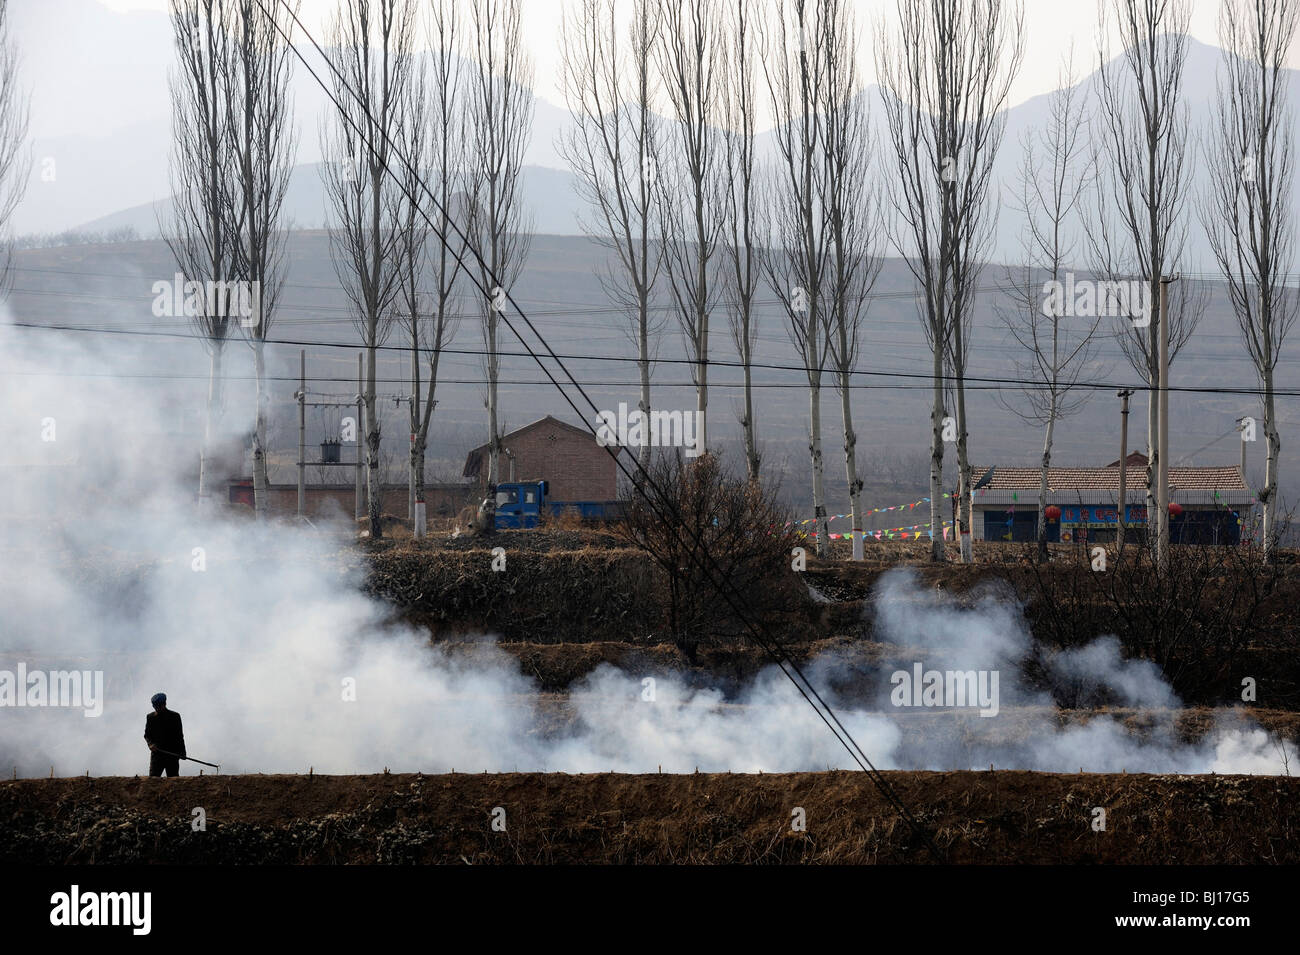 Farmers burning straw in a village in Zhuozhou, Hebei province, China. 27-Feb-2010 - Stock Image